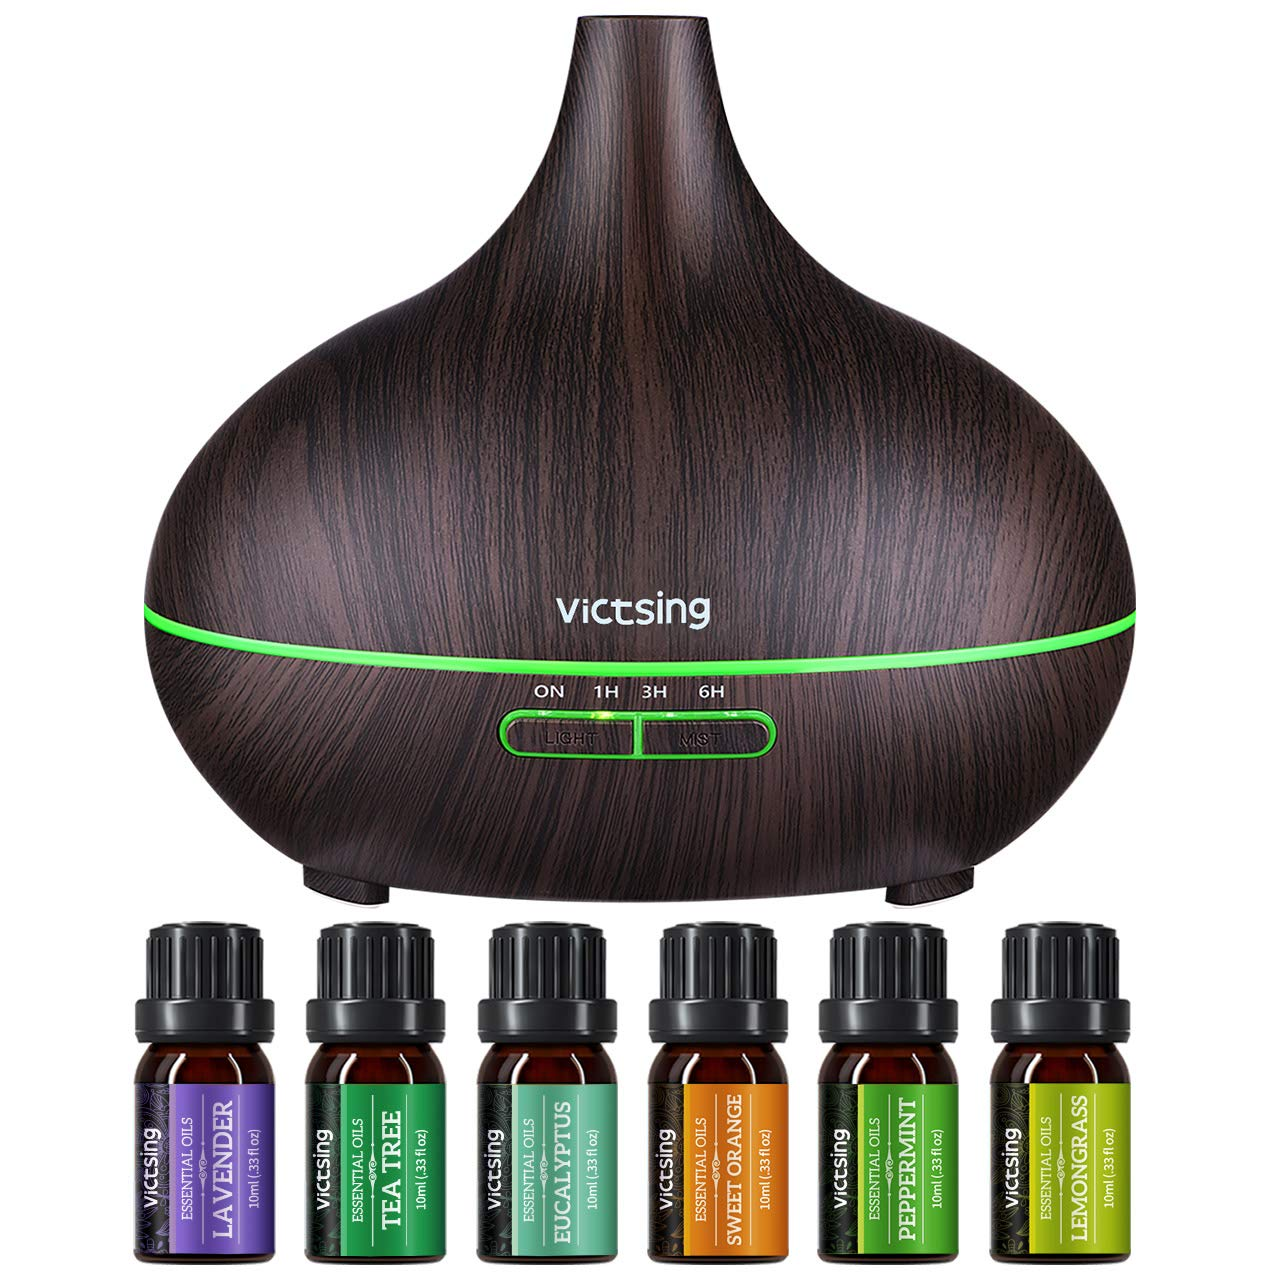 VicTsing 500ml Essential Oil Diffuser with Oils, Aromatherapy Diffuser with Essential Oil Set, Diffusers for Essential Oils with Auto Shut-Off, 4 Timer, 14 Color Lights, Gift Set for Home